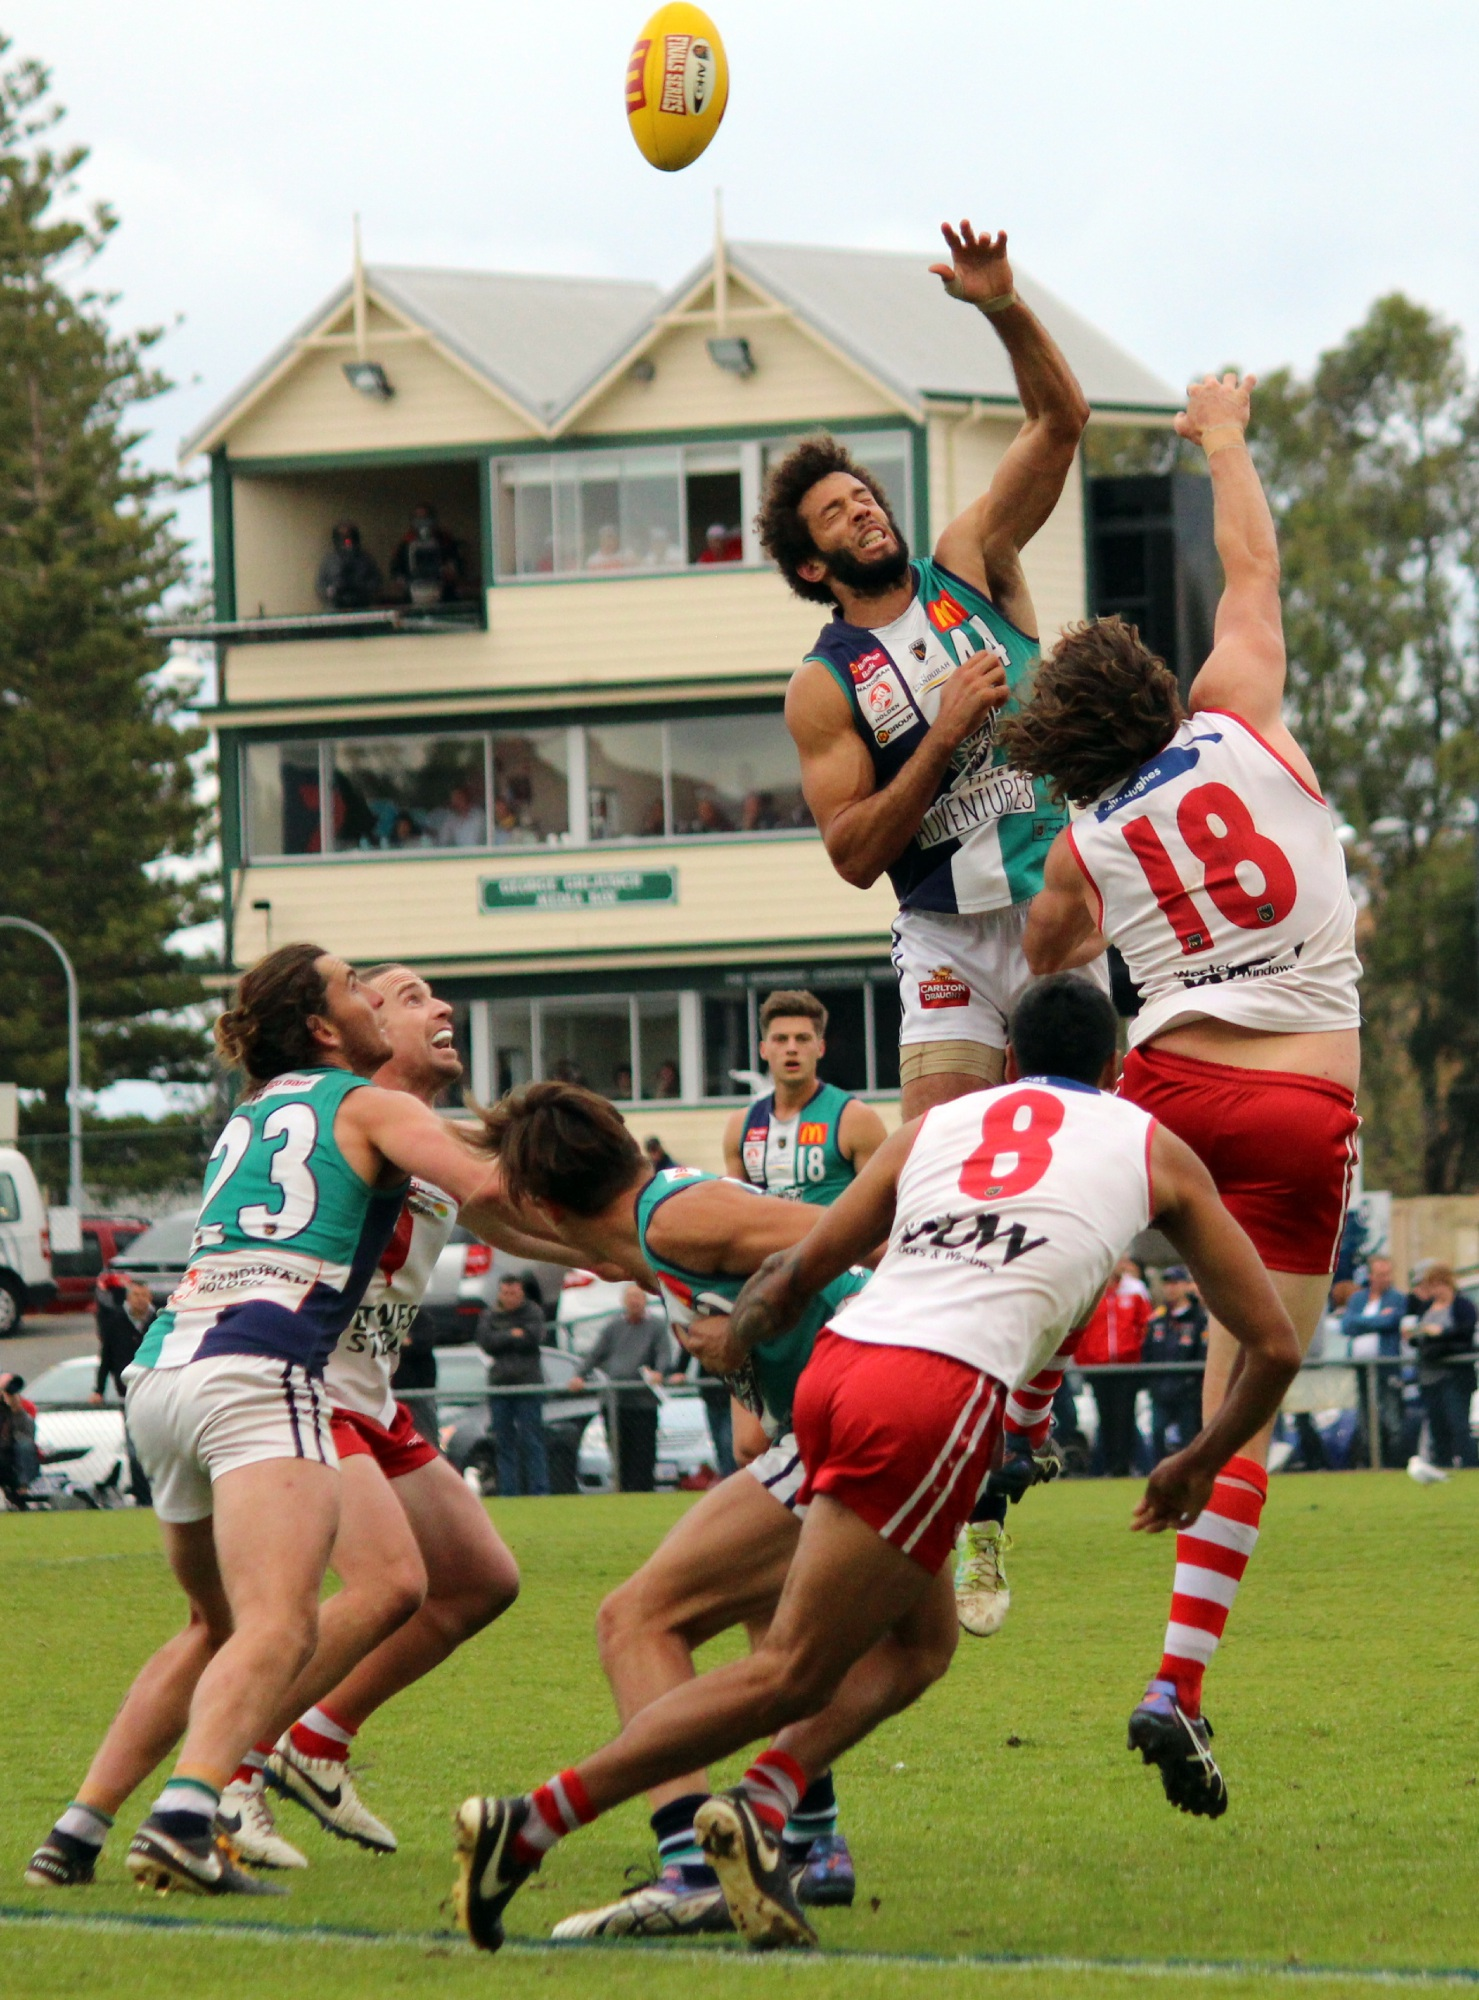 Zac Clarke flies high above the pack during Peel Thunder's finals match against South Fremantle on Sunday. Picture: Declan Byrne